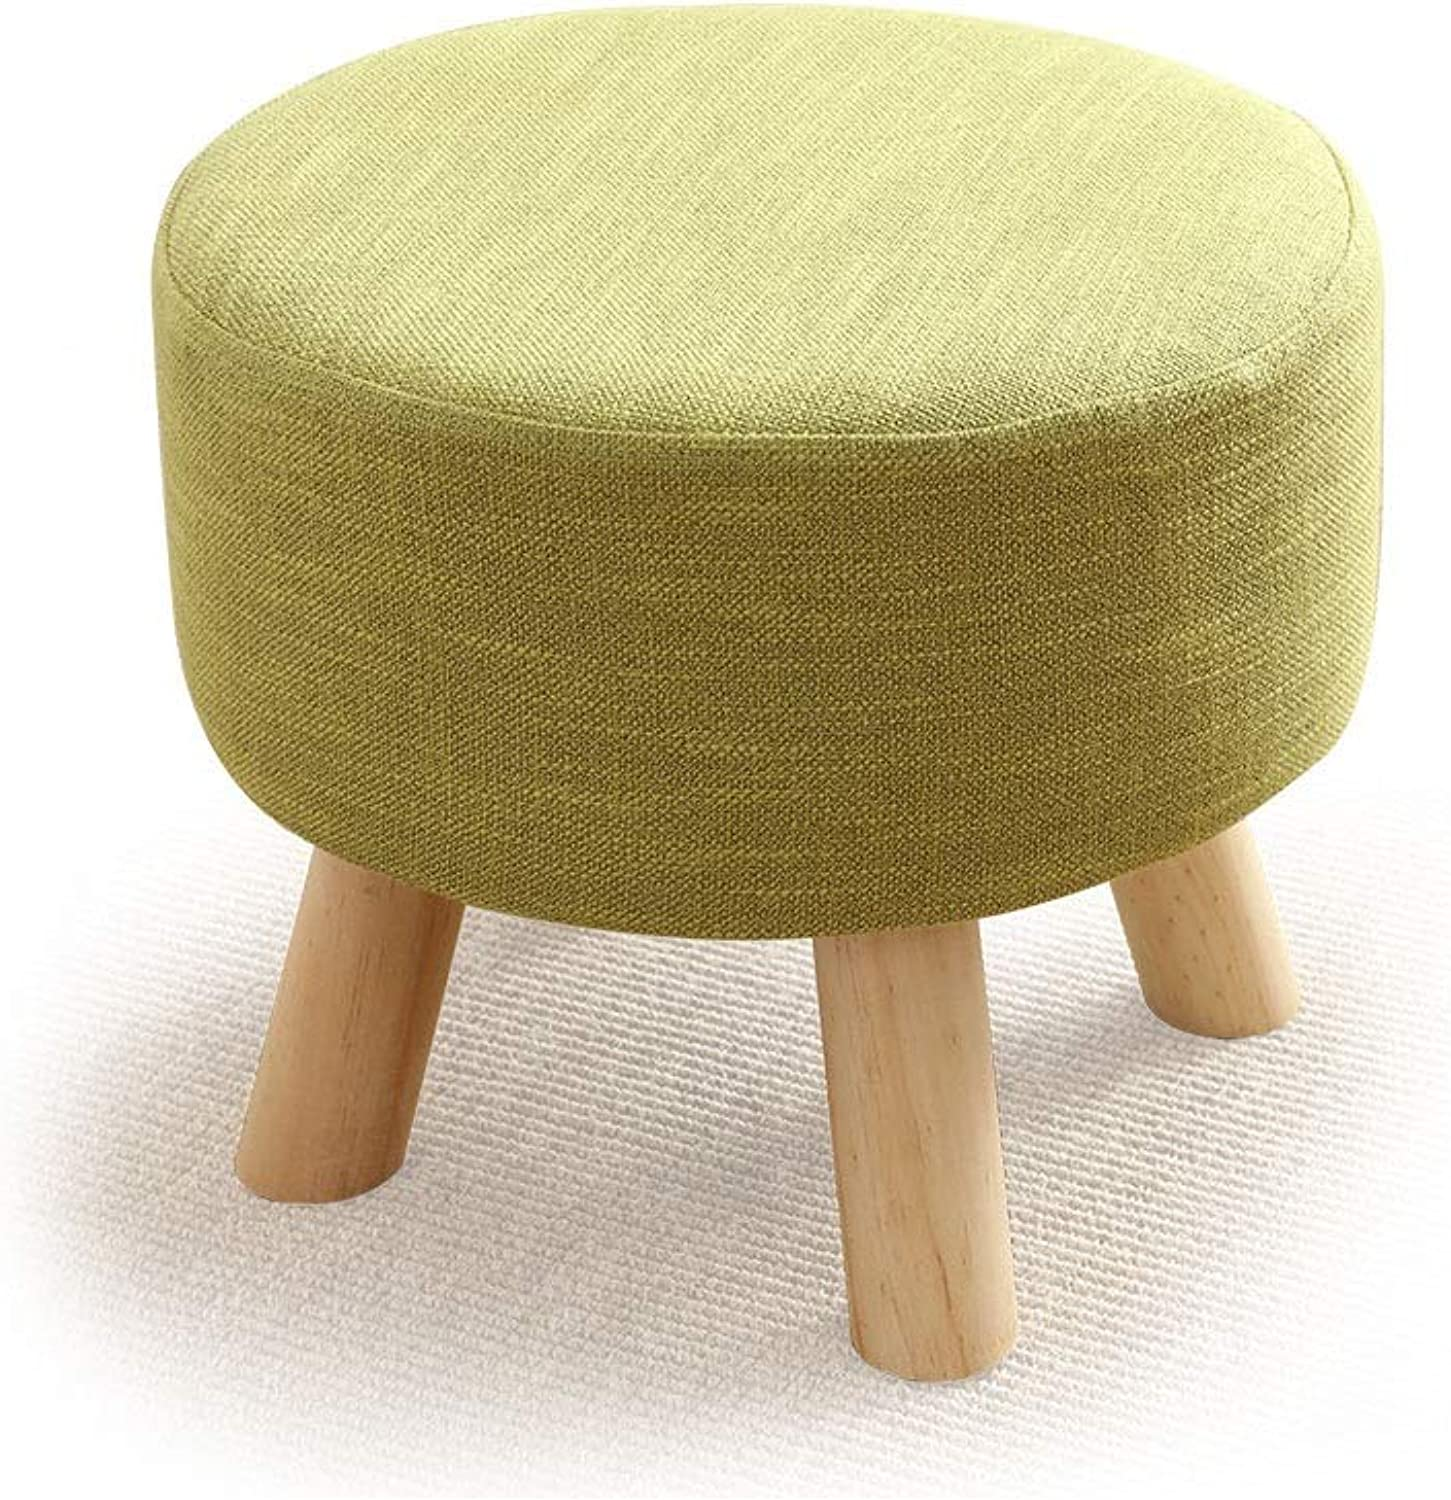 Foot Stools Pouffe Footstool Upholstered Footrest Linen Fabric Cover Seat Change shoes Bench Chair Round Wooden Stool (color   Green)